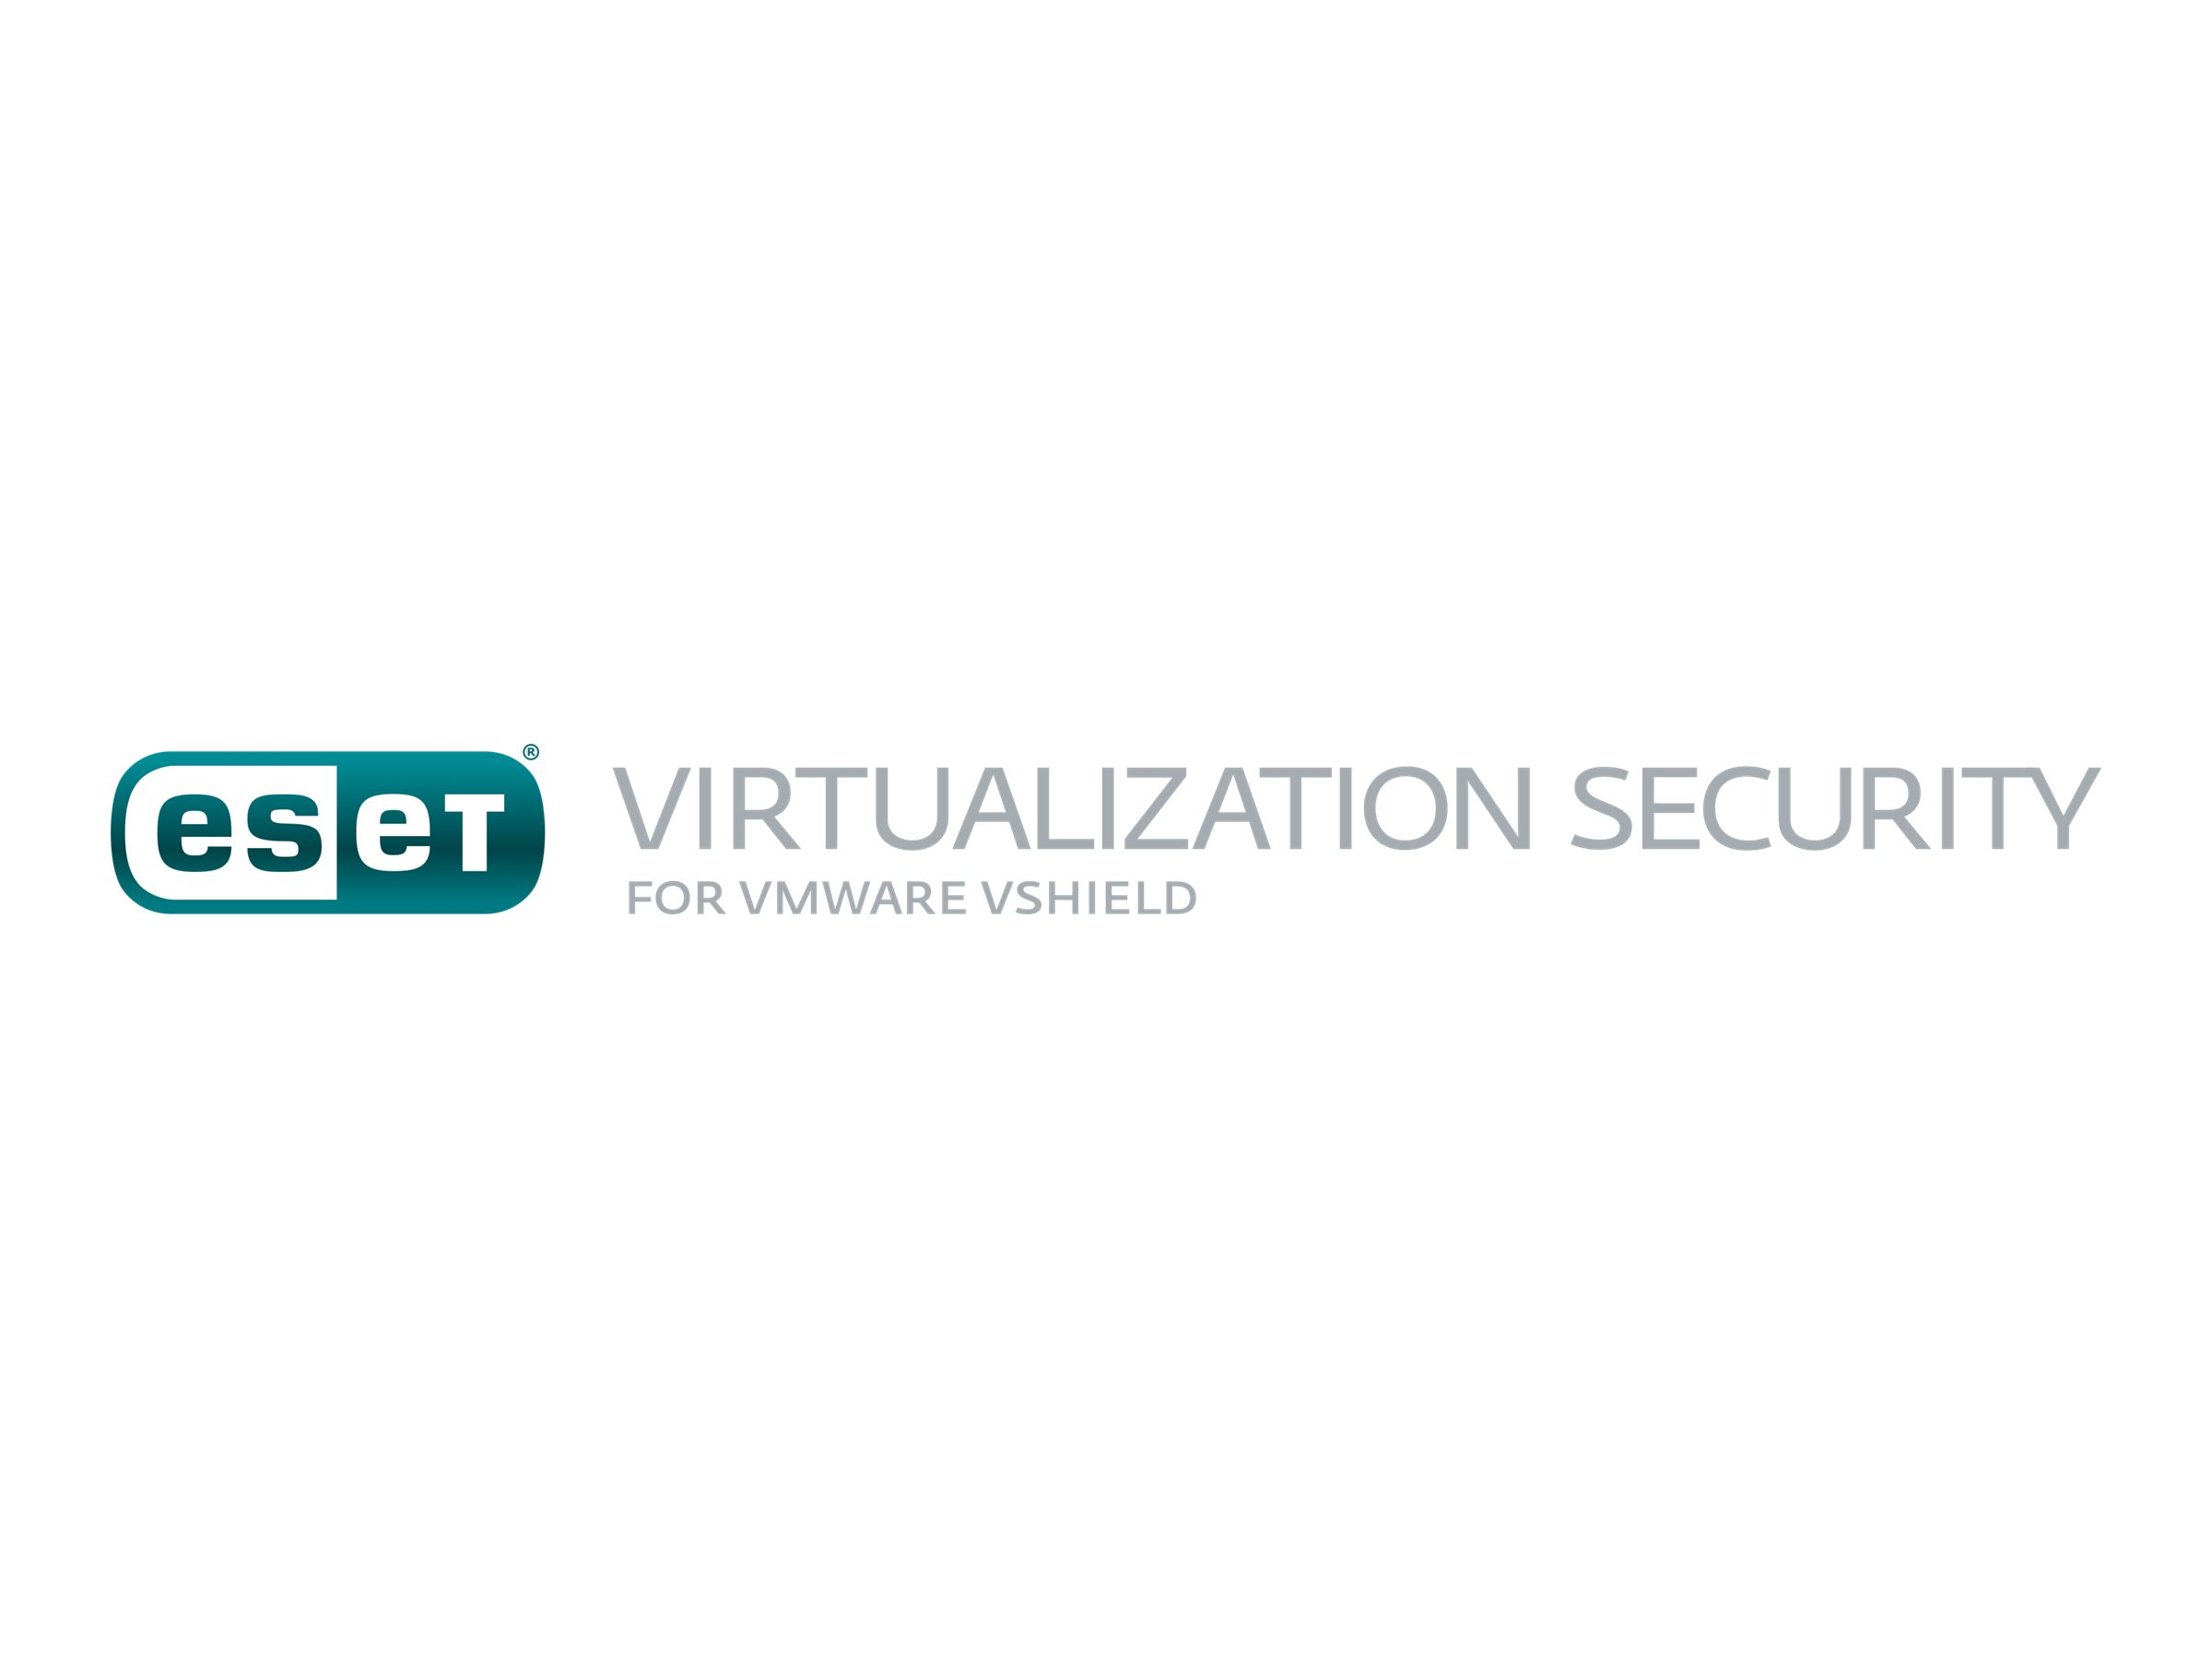 ESET Virtualization Security for VMware vShield - Abonnement-Lizenz (2 Jahre) - 1 virtuelle Maschine - Volumen - 100-249 Lizenze